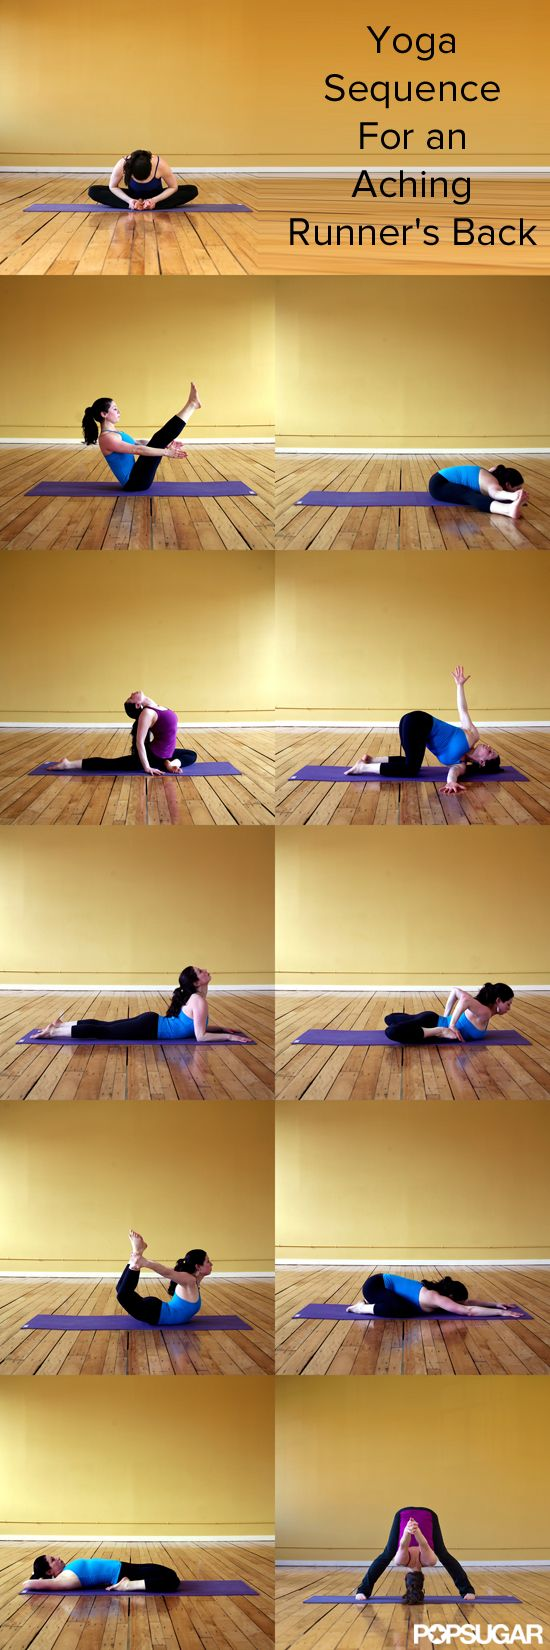 Yoga Sequence For an Aching Runner's Back - If you run, it's not unusual...